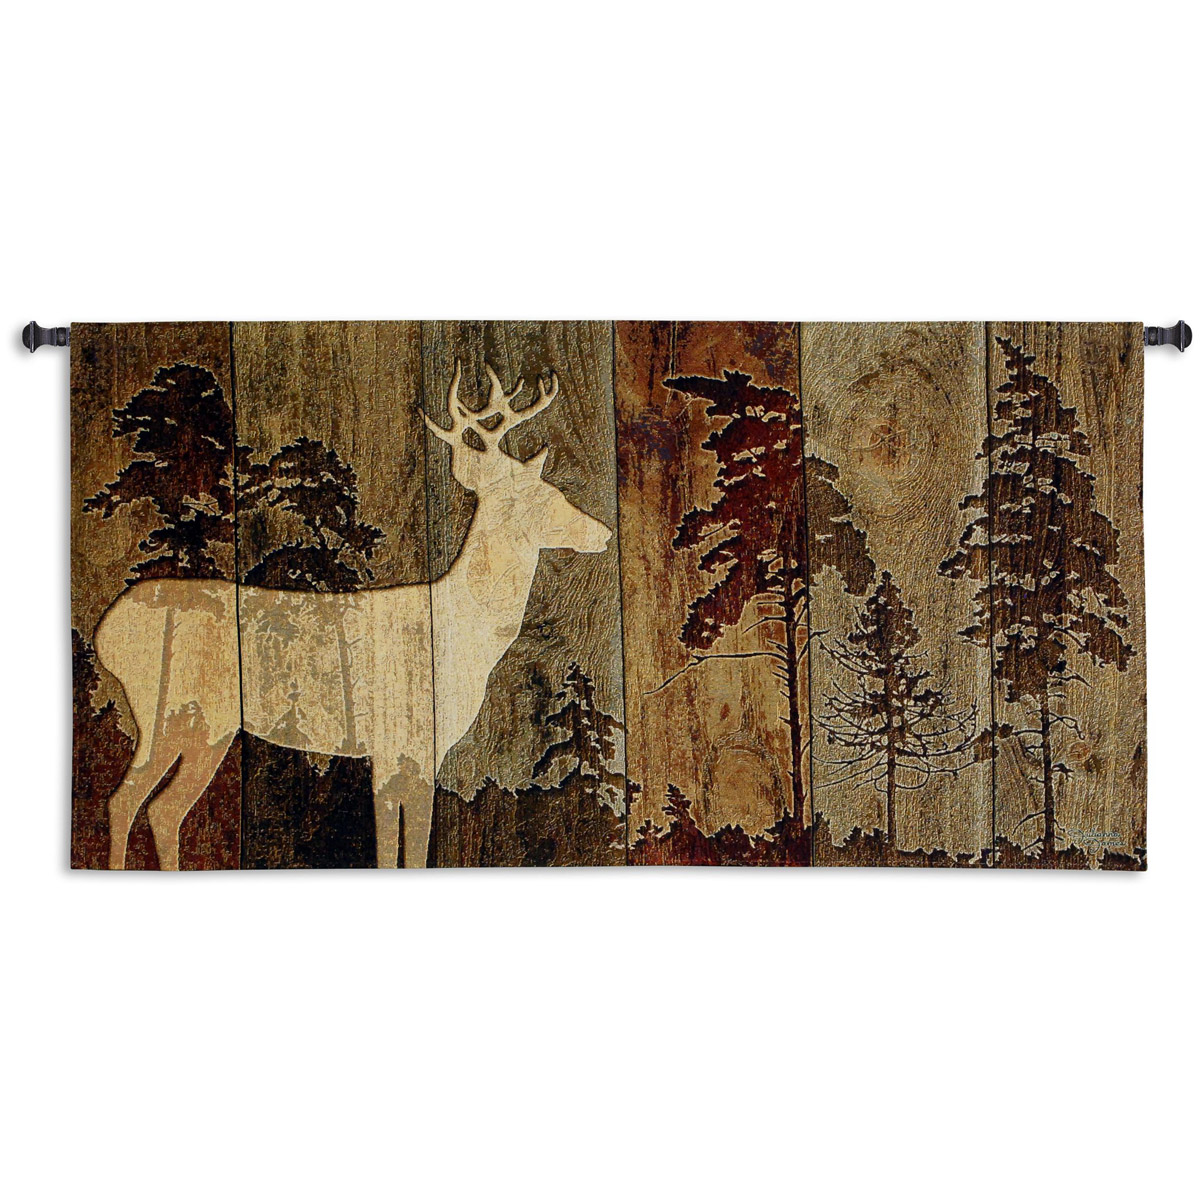 Black Forest Decor Woodburn lodge wall tapestry